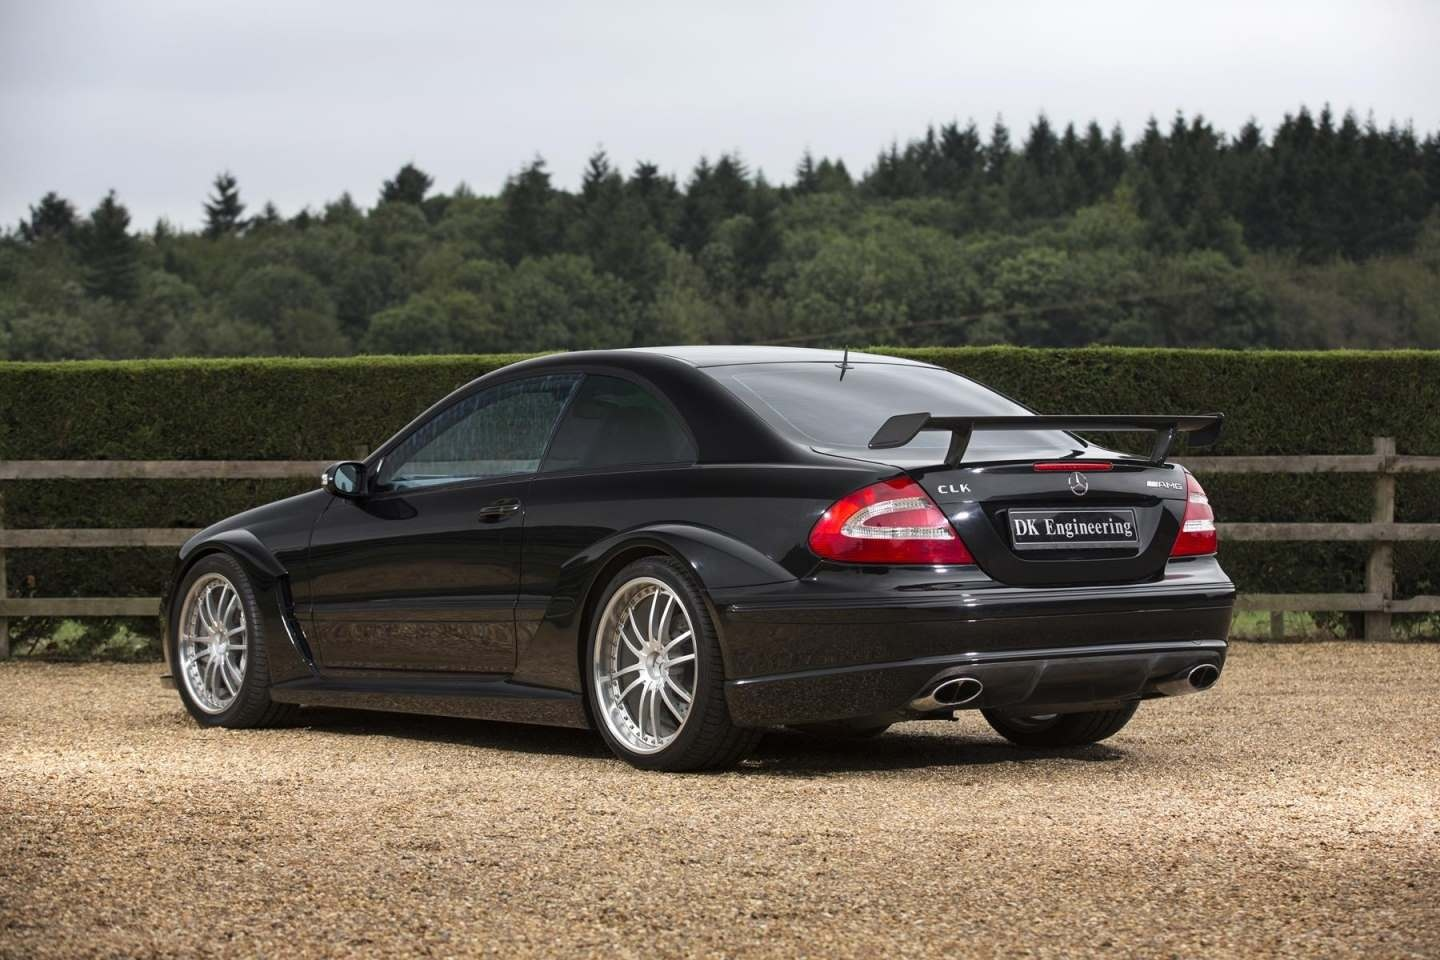 Mercedes benz clk dtm amg coupe for sale for Mercedes benz clk500 for sale